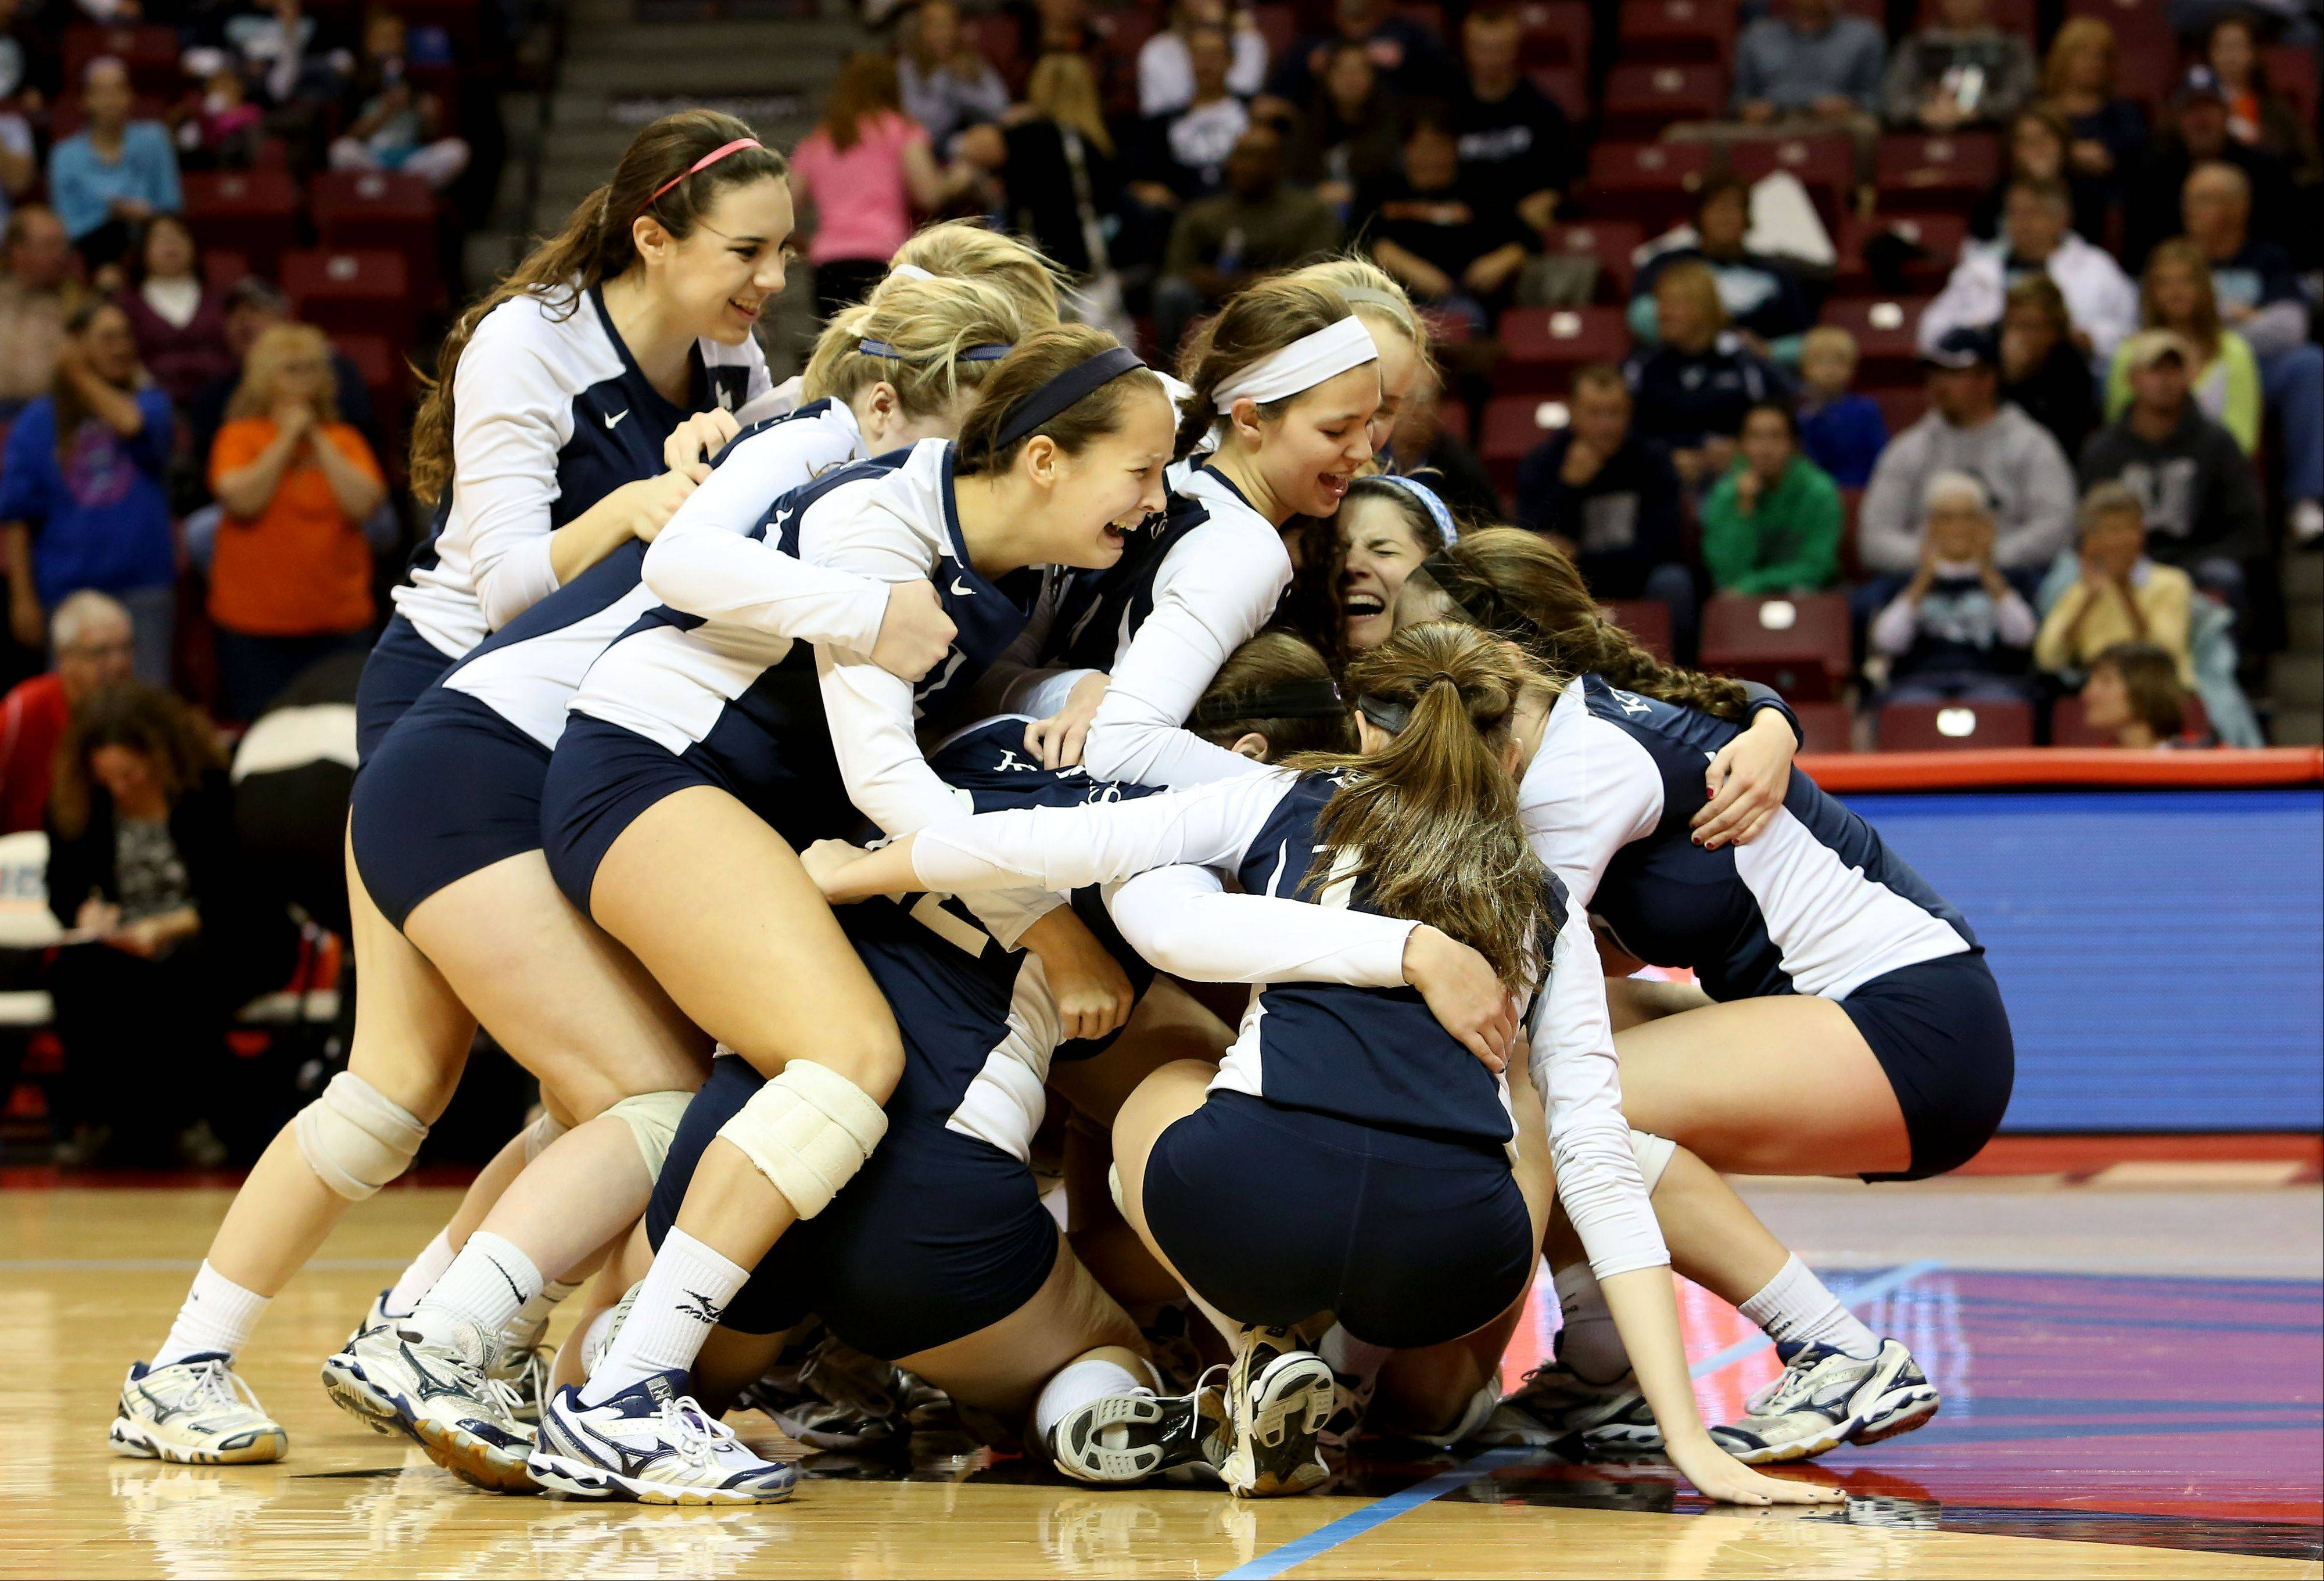 IC Catholic celebrates after beating Edwards County in two games for the Class 2A championship in girls state volleyball on Saturday in Normal.